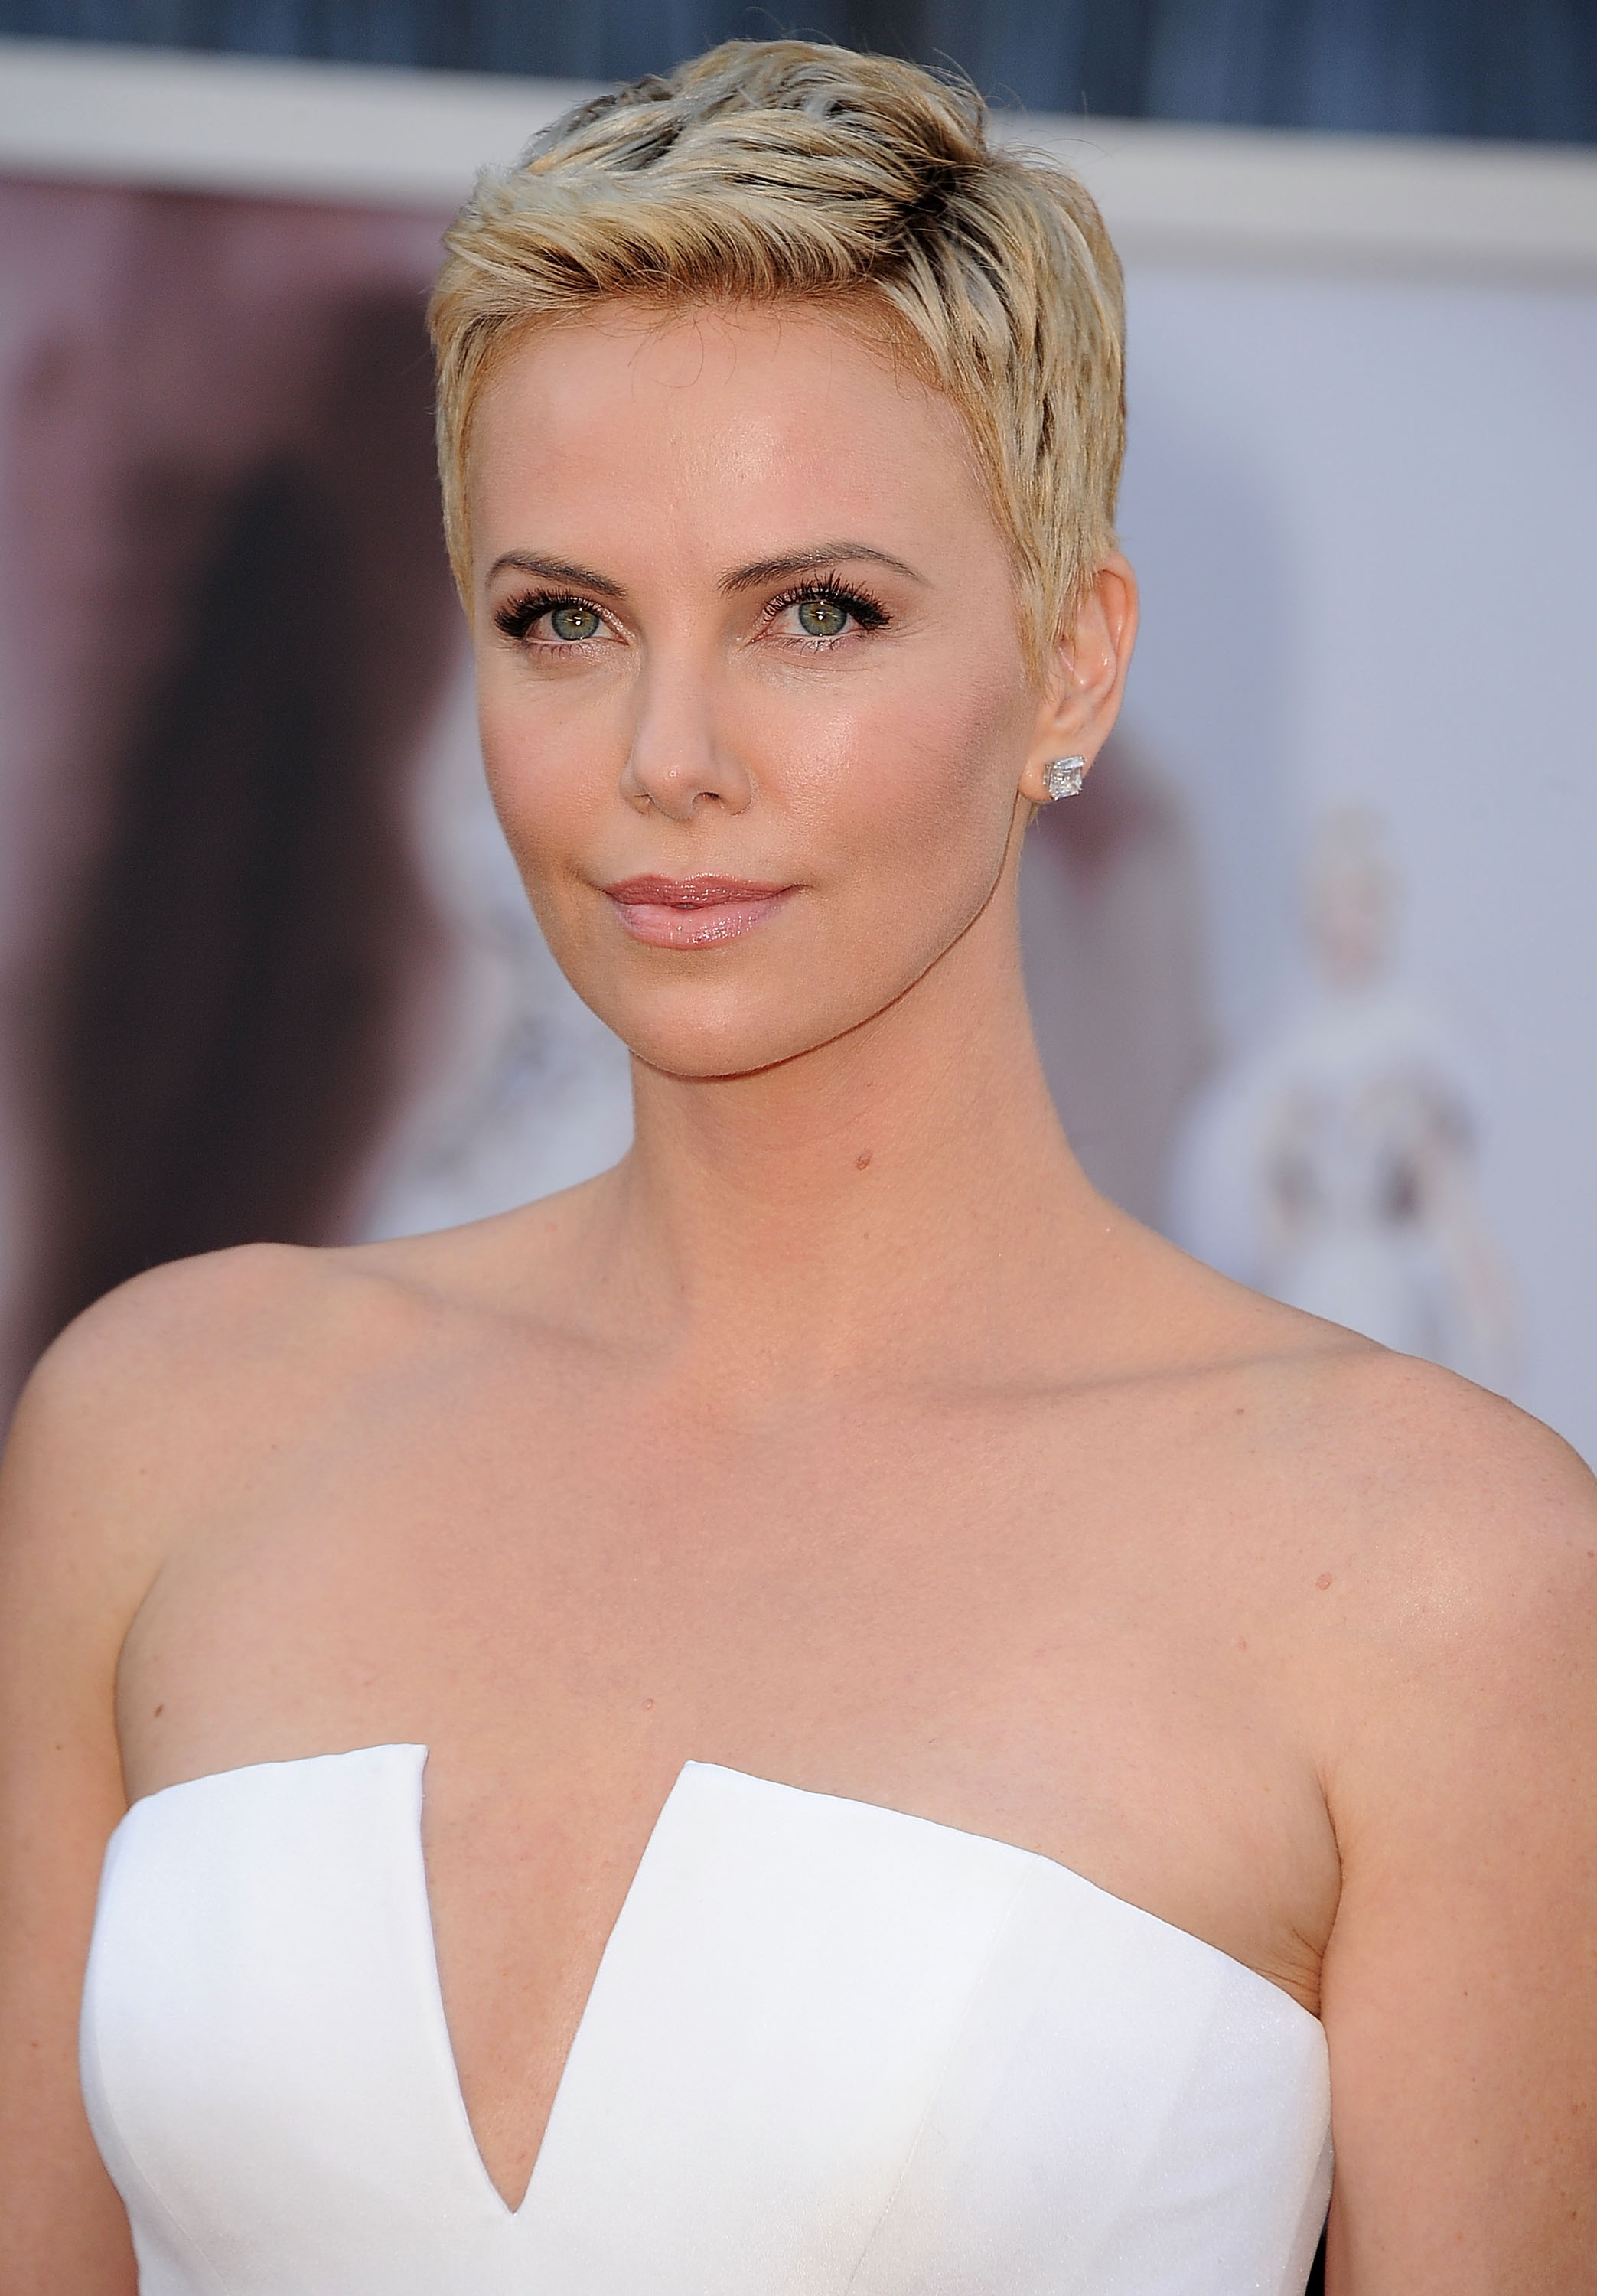 Awesome 34 Pixie Hairstyles And Cuts Celebrities With Pixies Short Hairstyles For Black Women Fulllsitofus